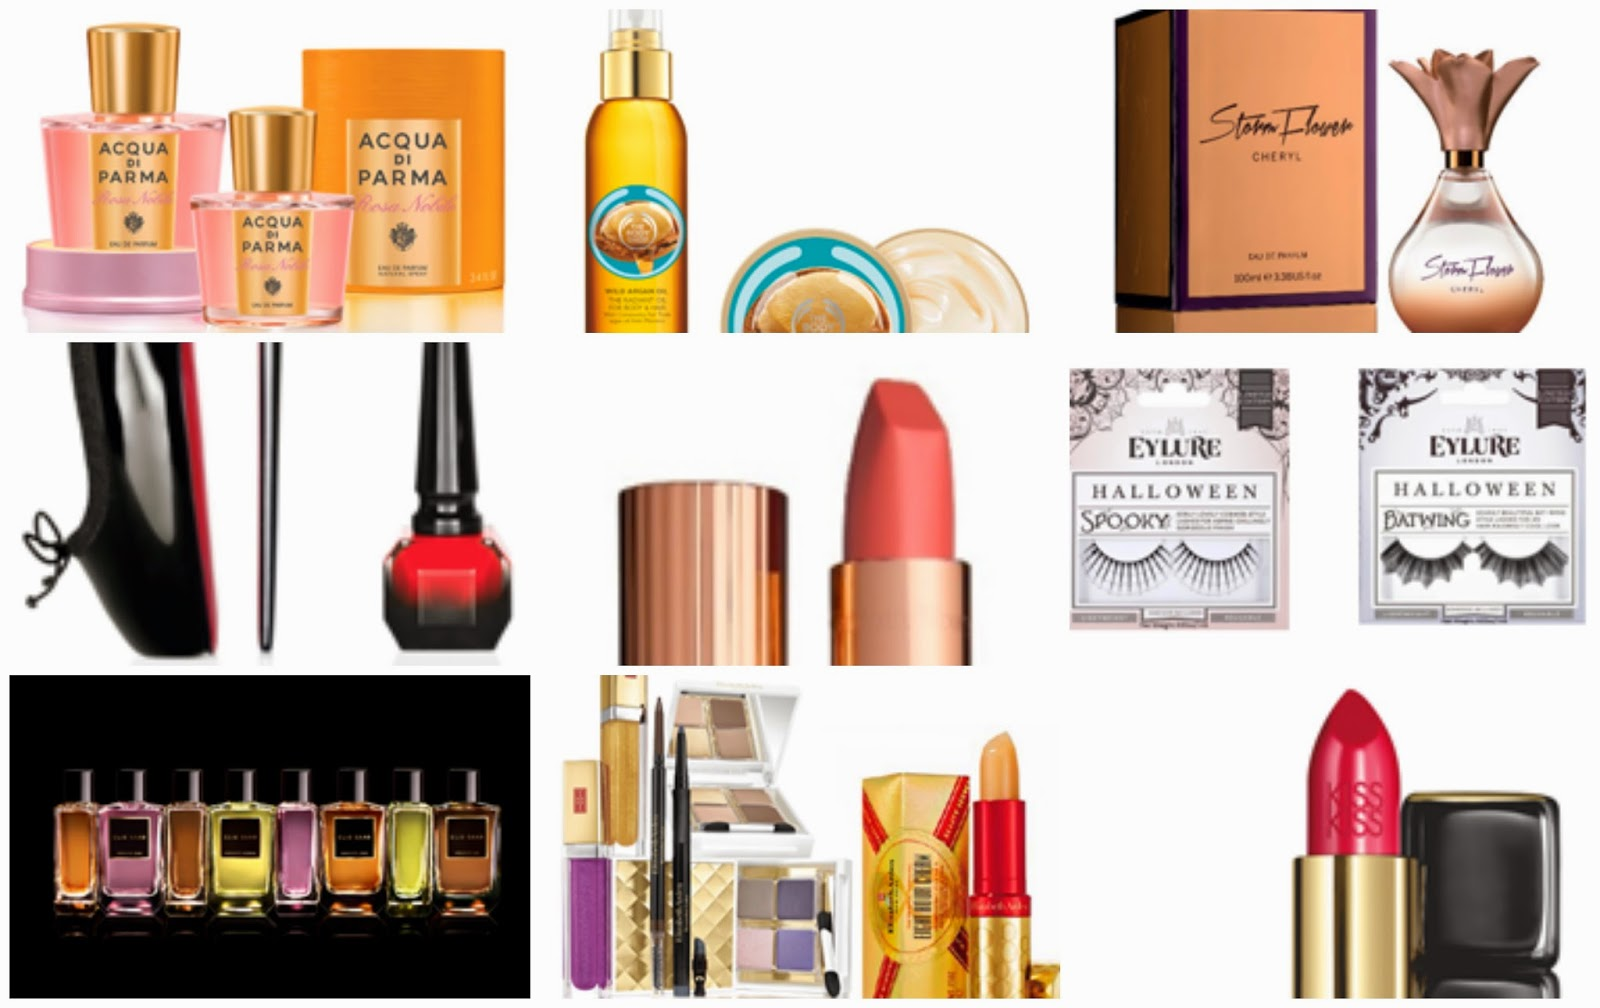 The Daily Beauty Report (25.07.14)